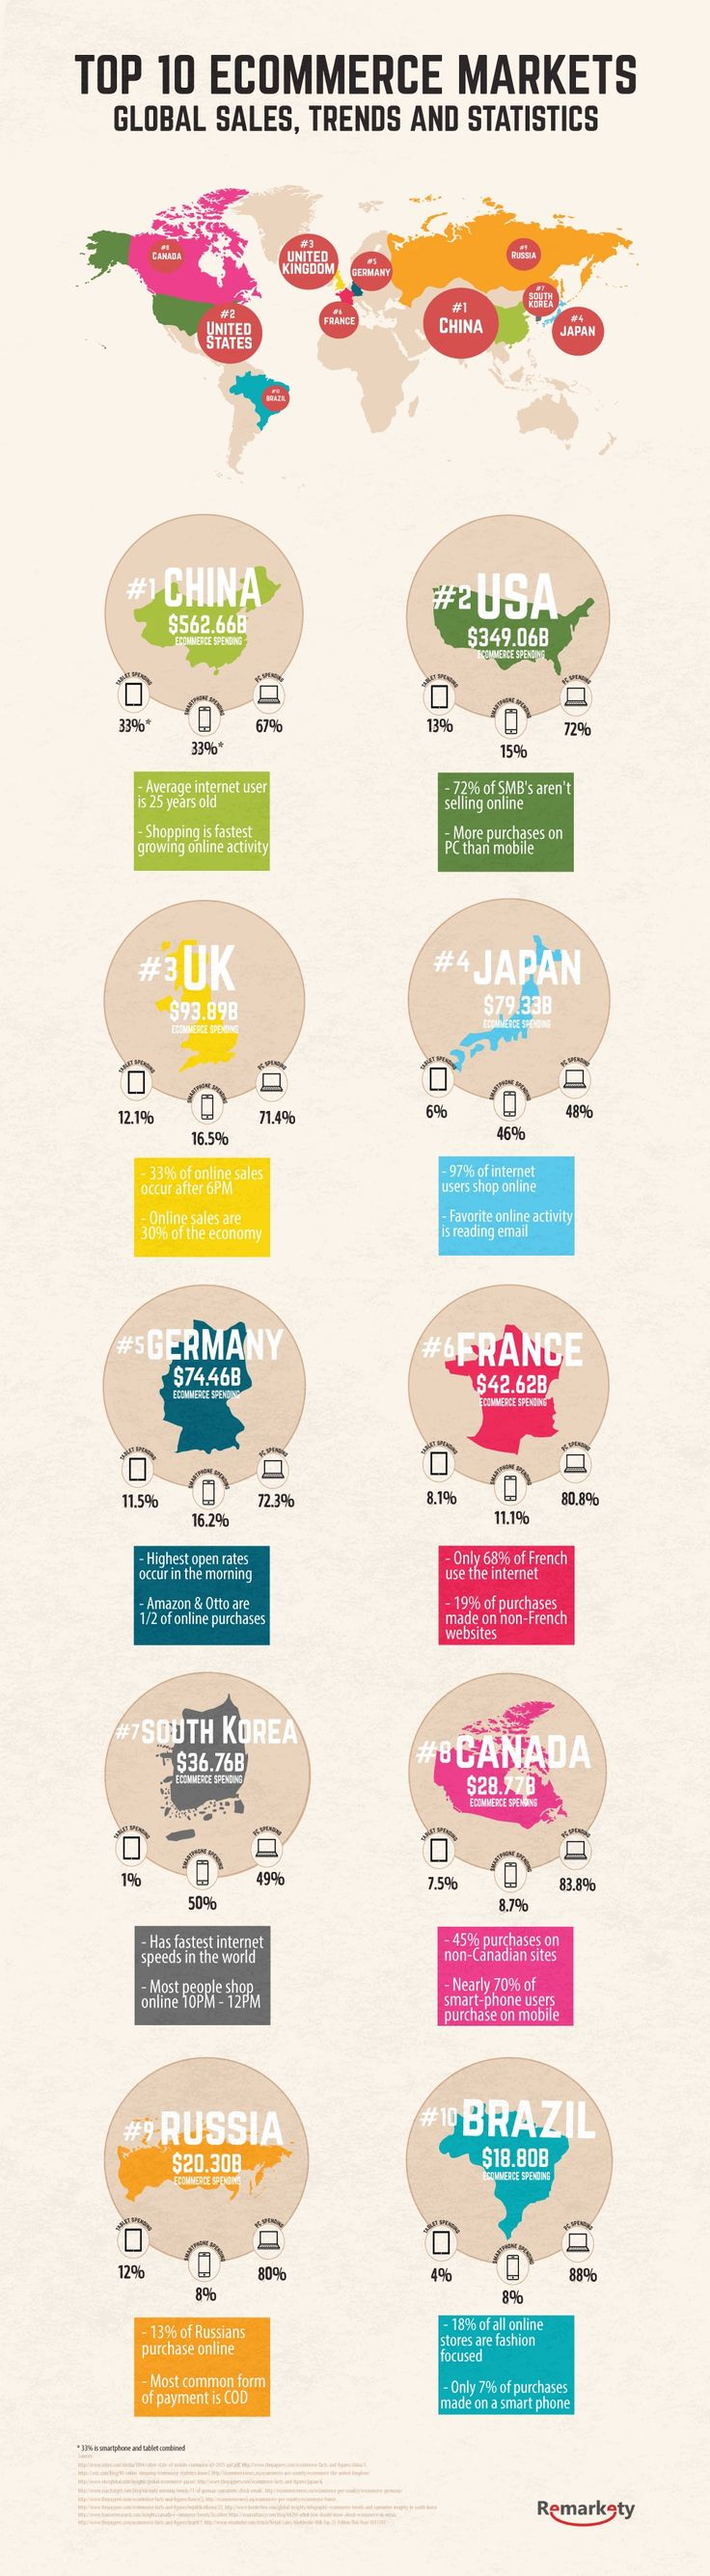 Top Global #Ecommerce Markets and Trends (Infographic)  #ecommercebusiness #ecommercetrends